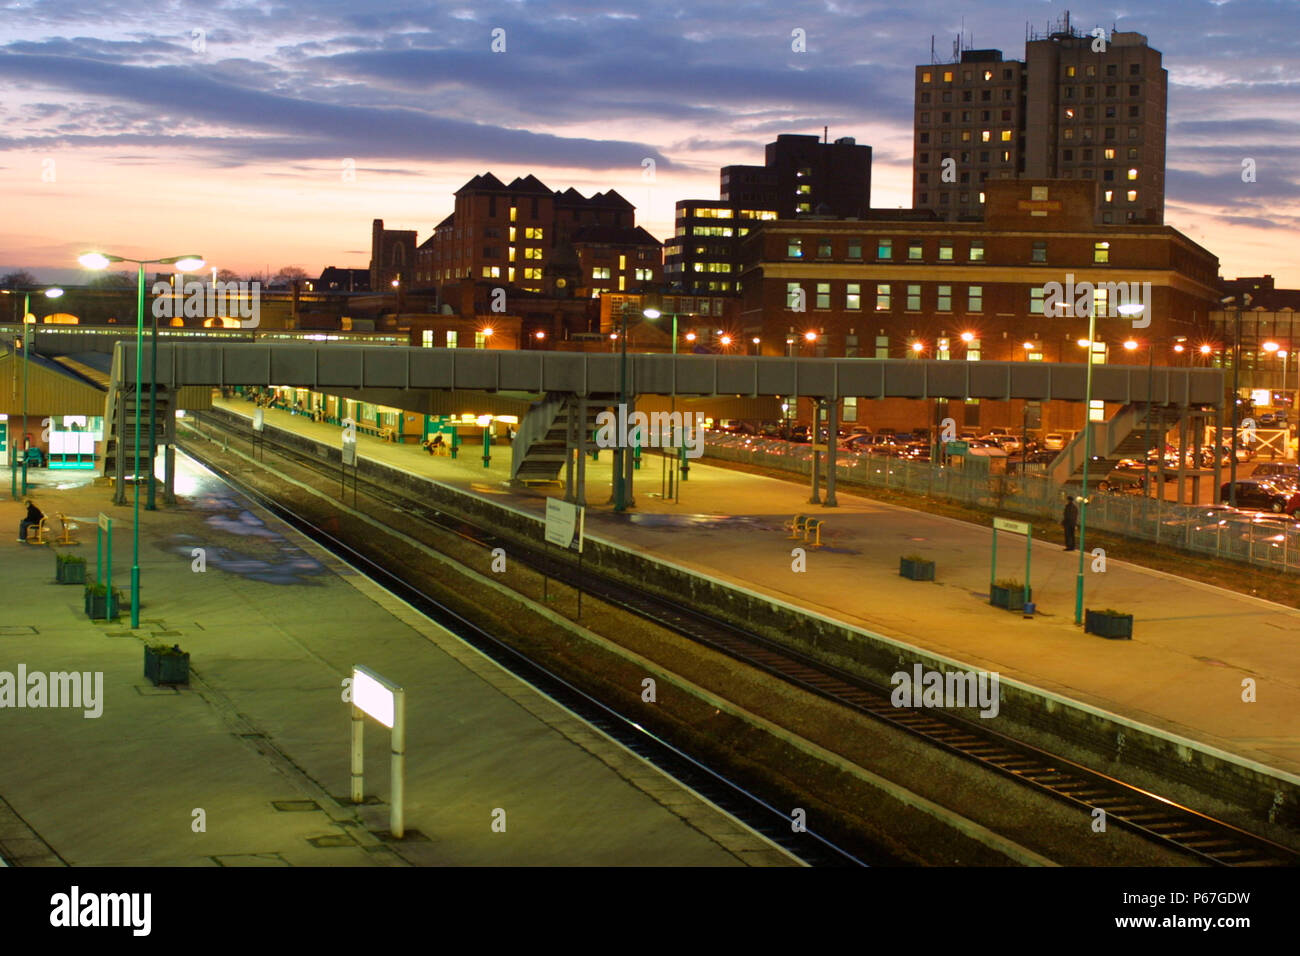 Leicester Station at twighlight. 2003. - Stock Image